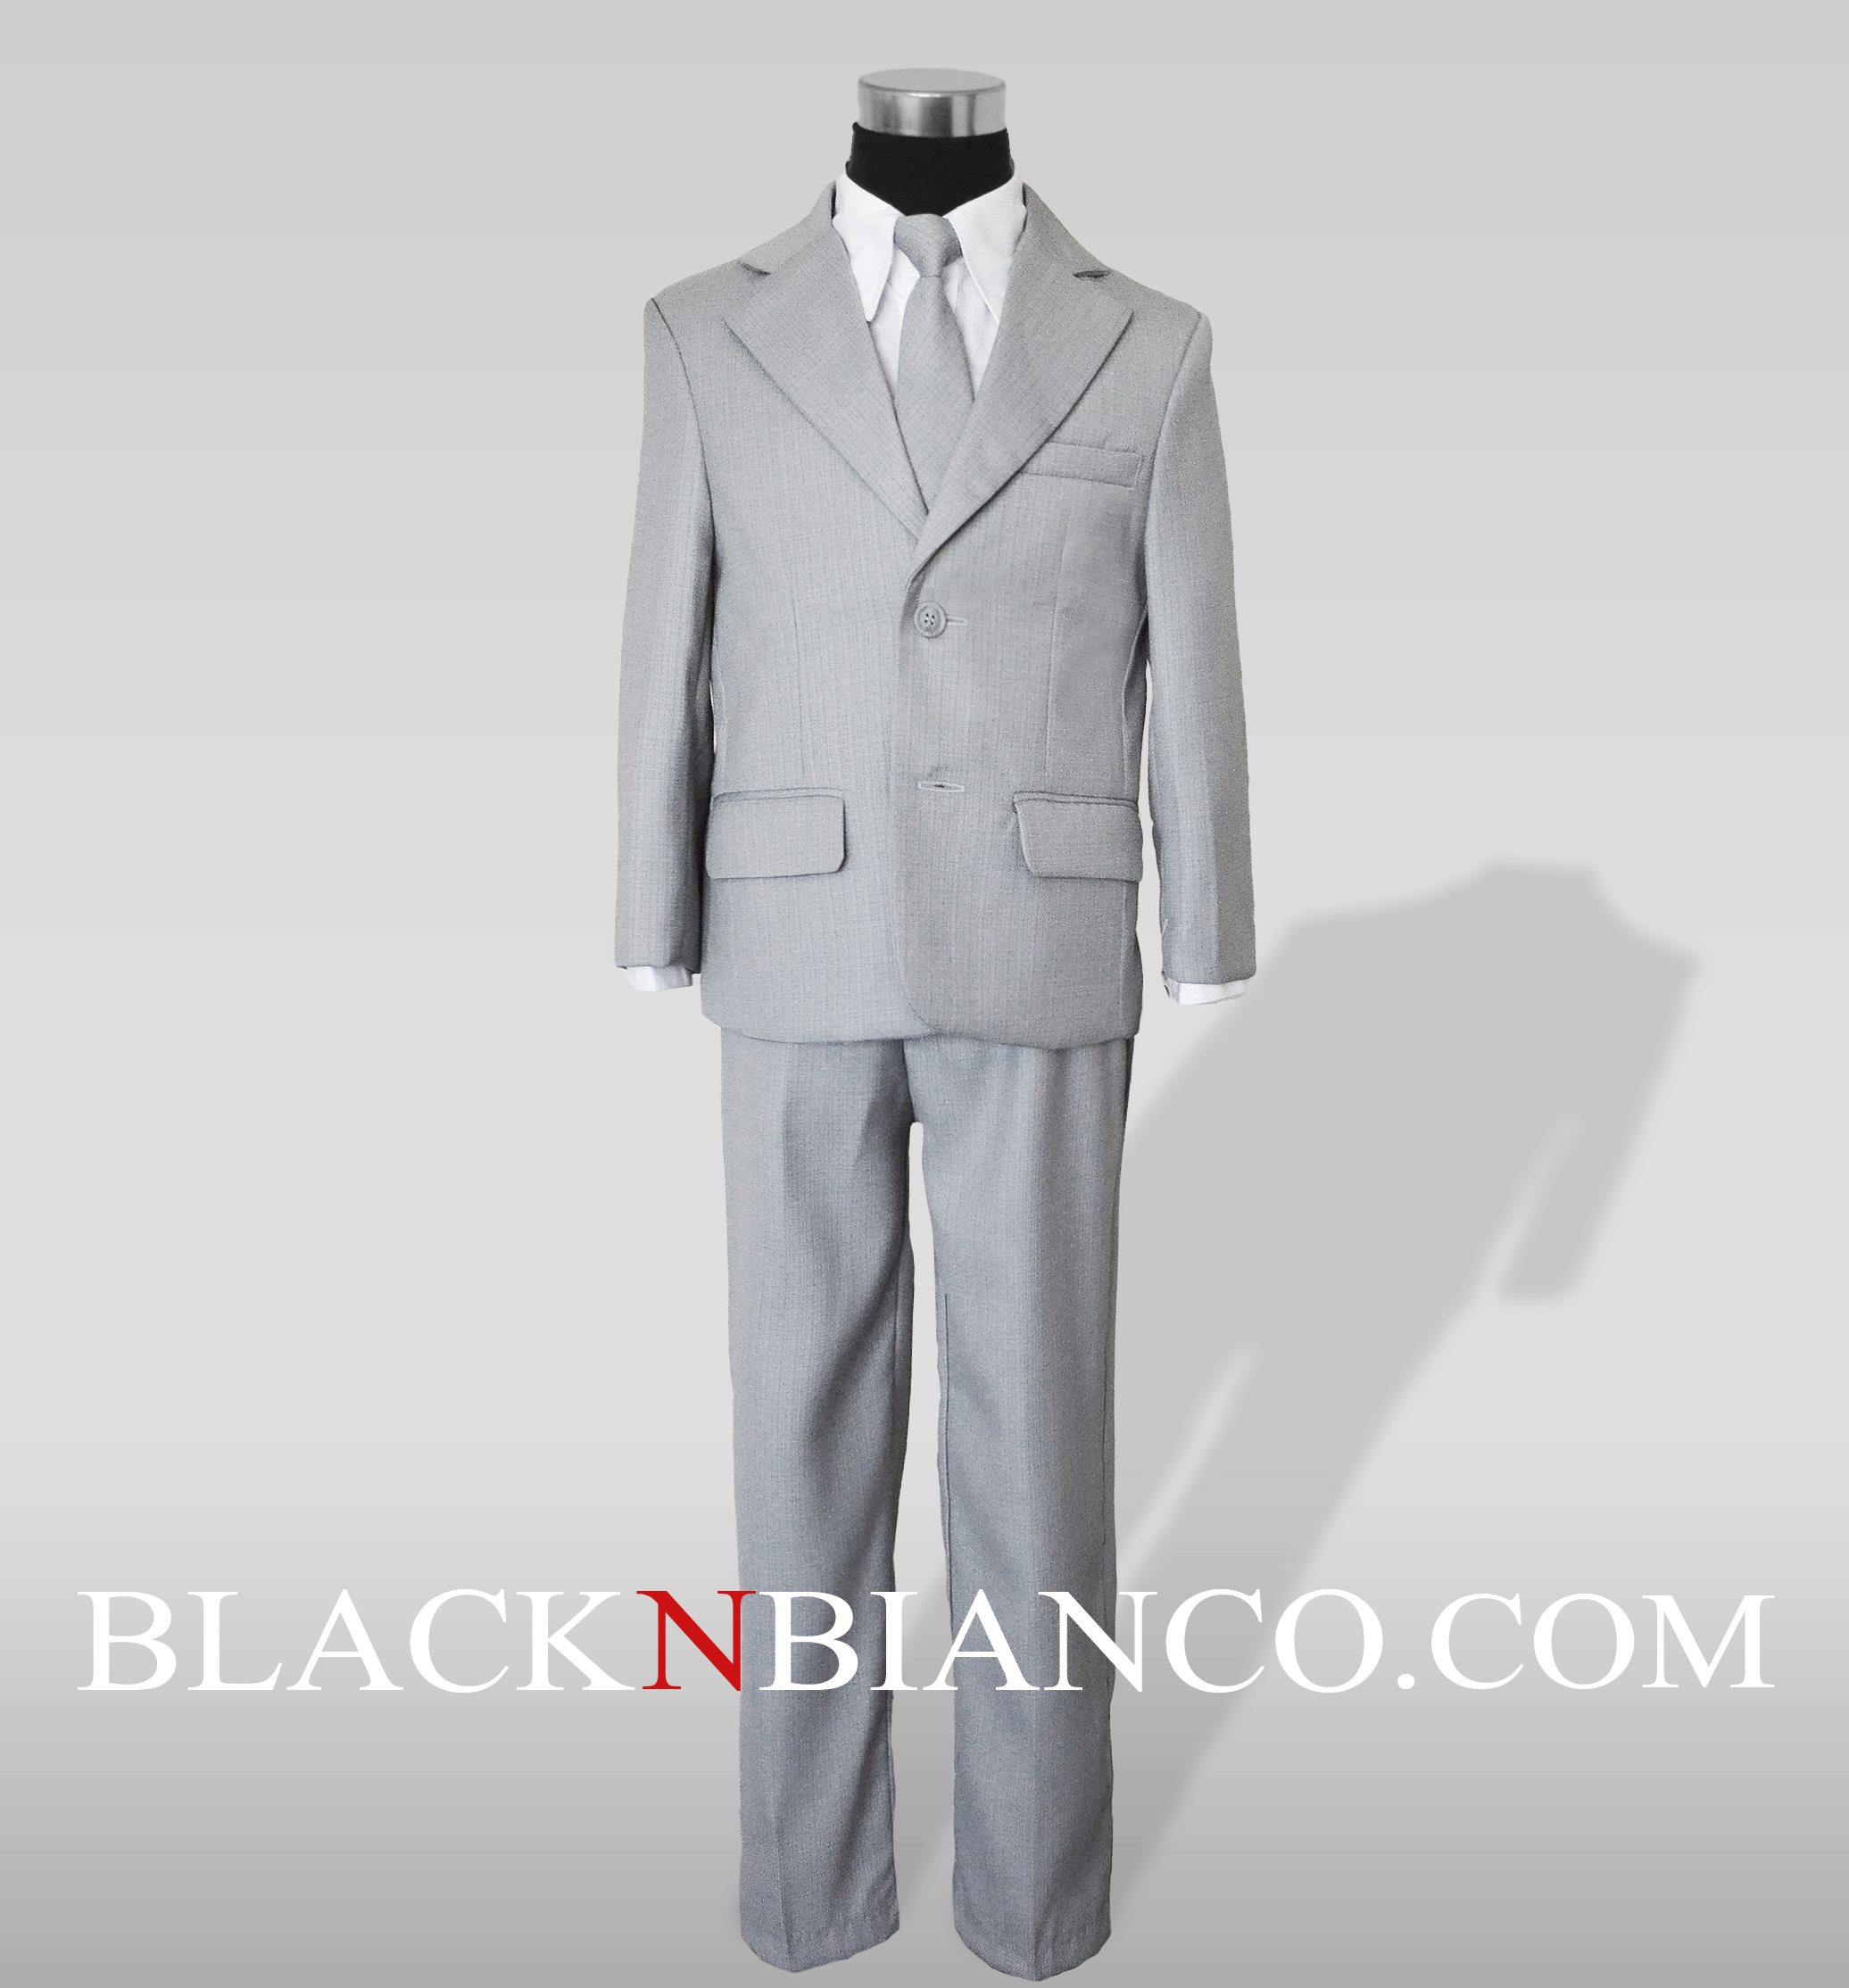 Black N Bianco Boys Light Gray Suit Five Piece Set Complete Outfit (6) Sold by House Bianco. $ $ Le Suit Women's Two-Button Pinstriped Pantsuit (10, Light Sand) Sold by Rennde. $ $ Le Suit Women's Plus Size One-Button Striped Pantsuit (22W, Light Stone).